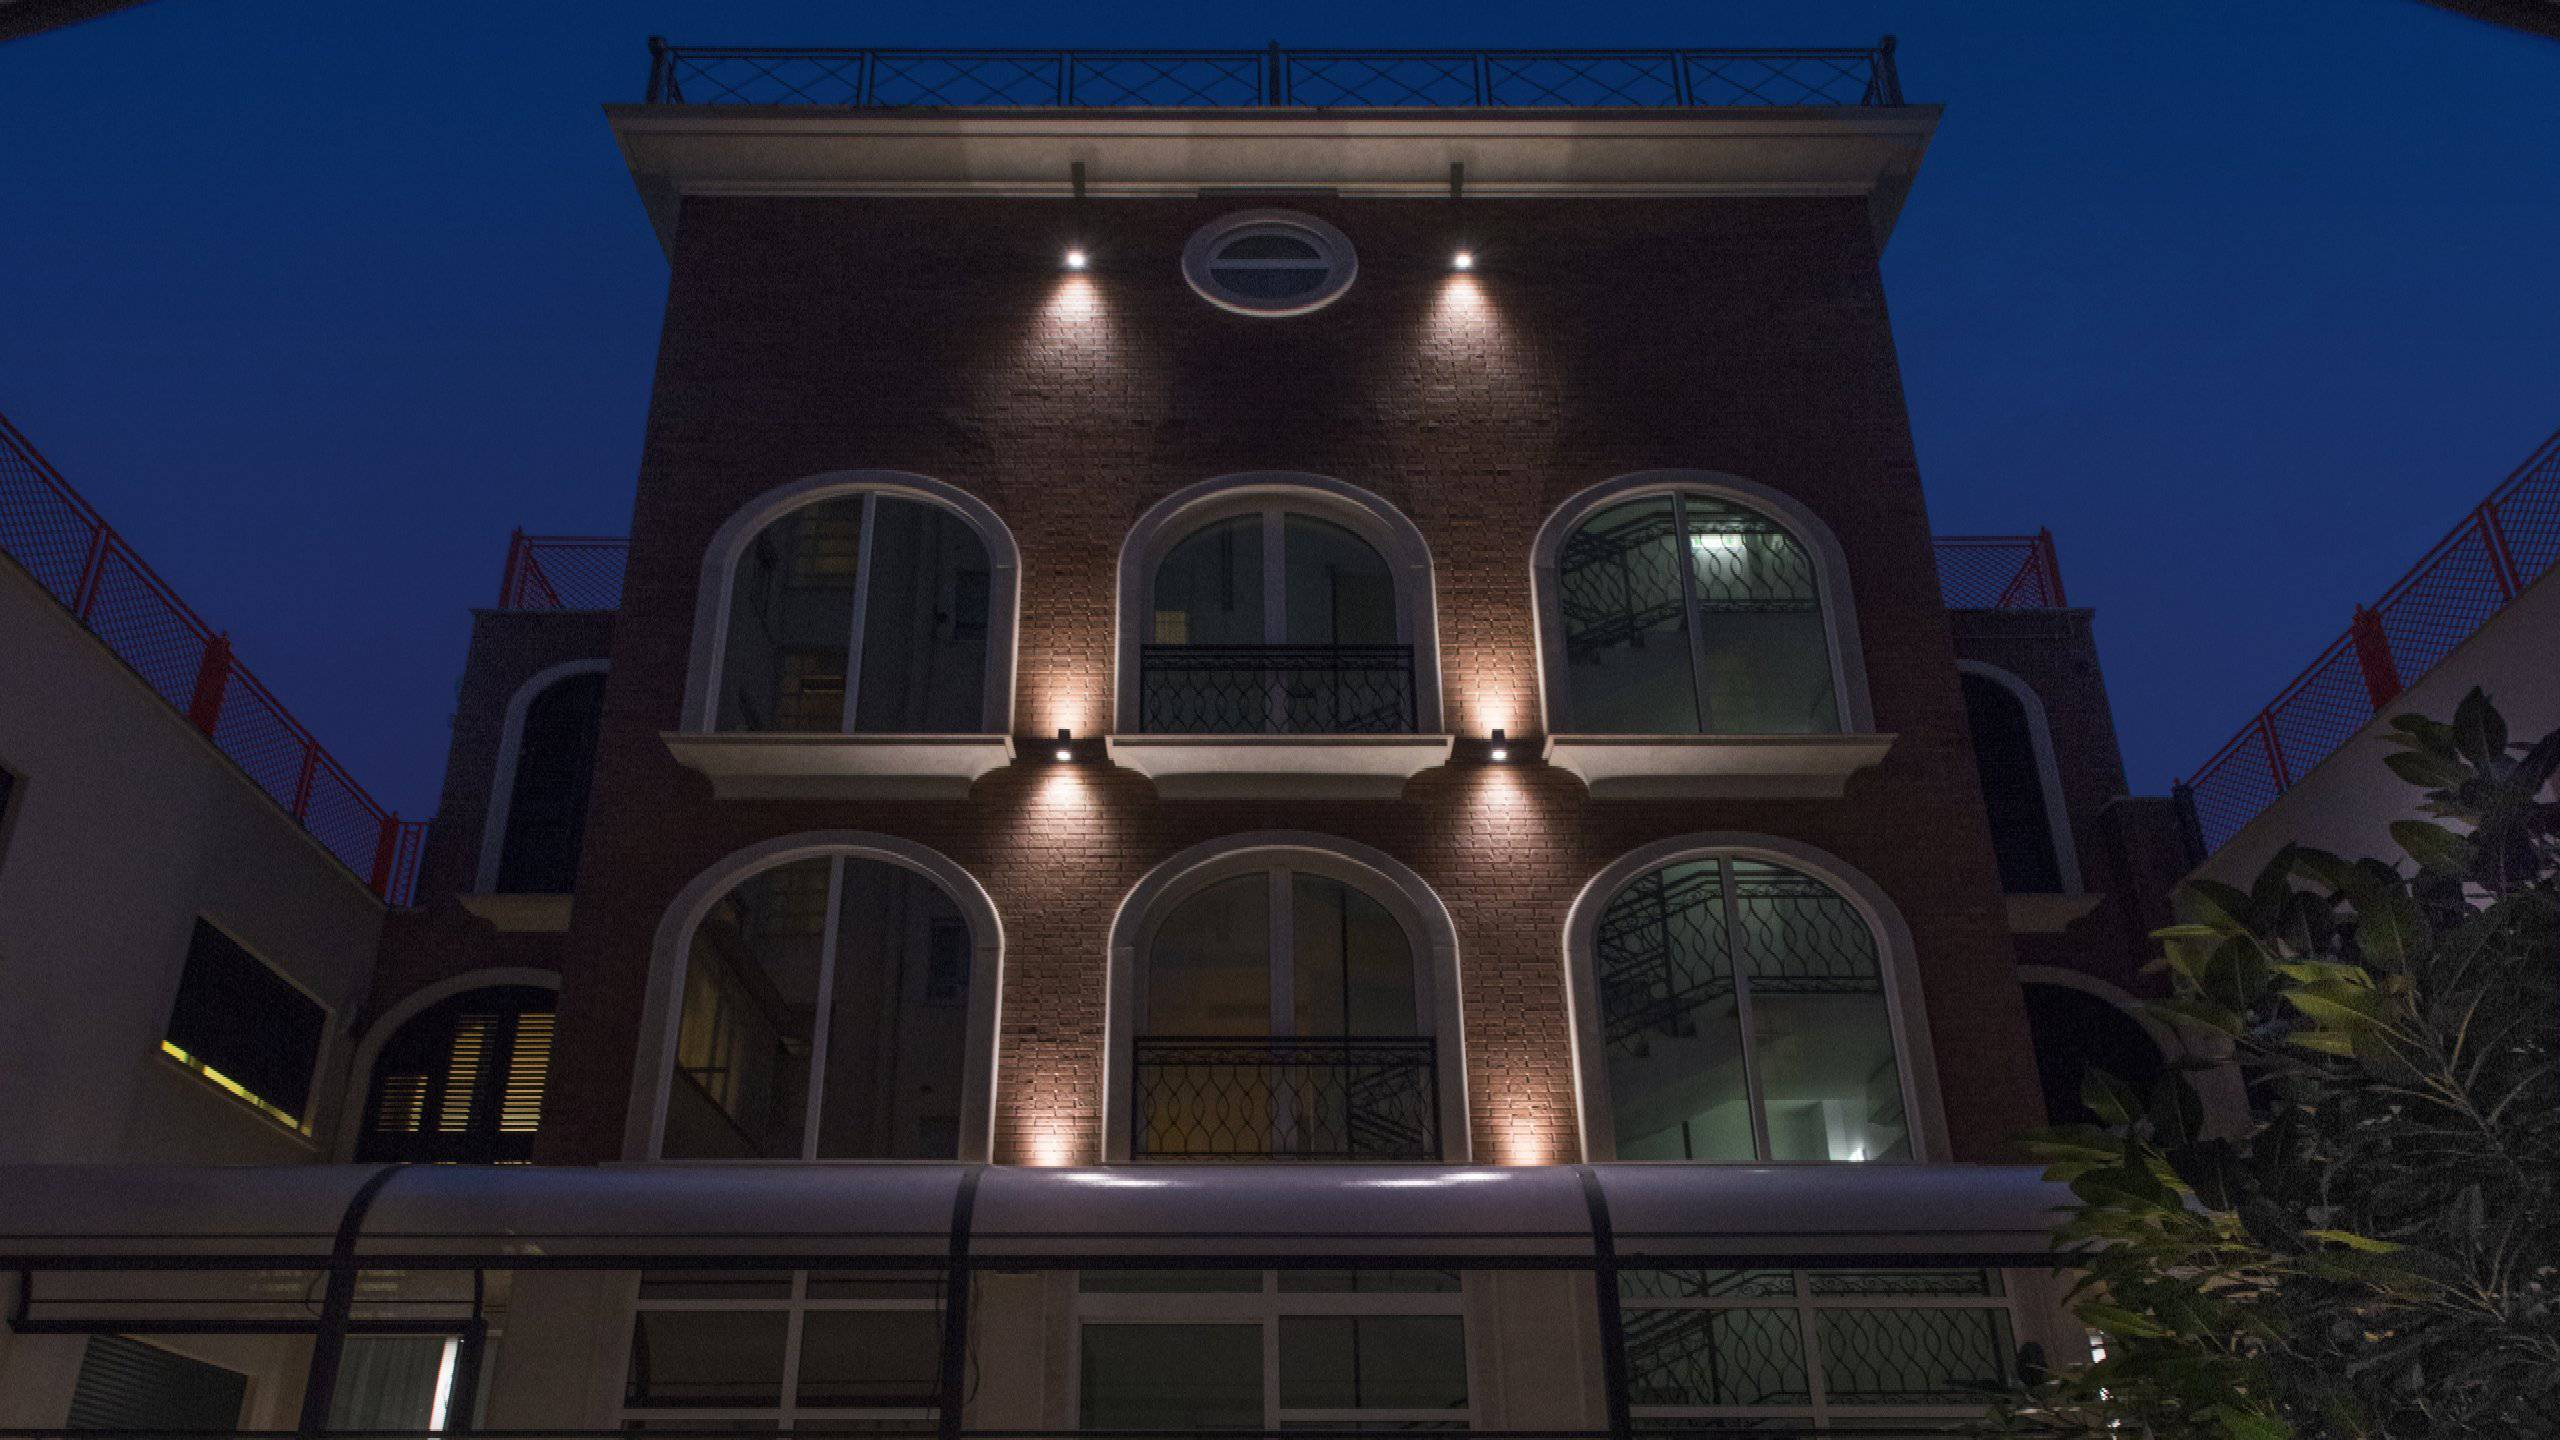 Morin-10-rome-Exclusive-Suites-rome-the-building-2083a